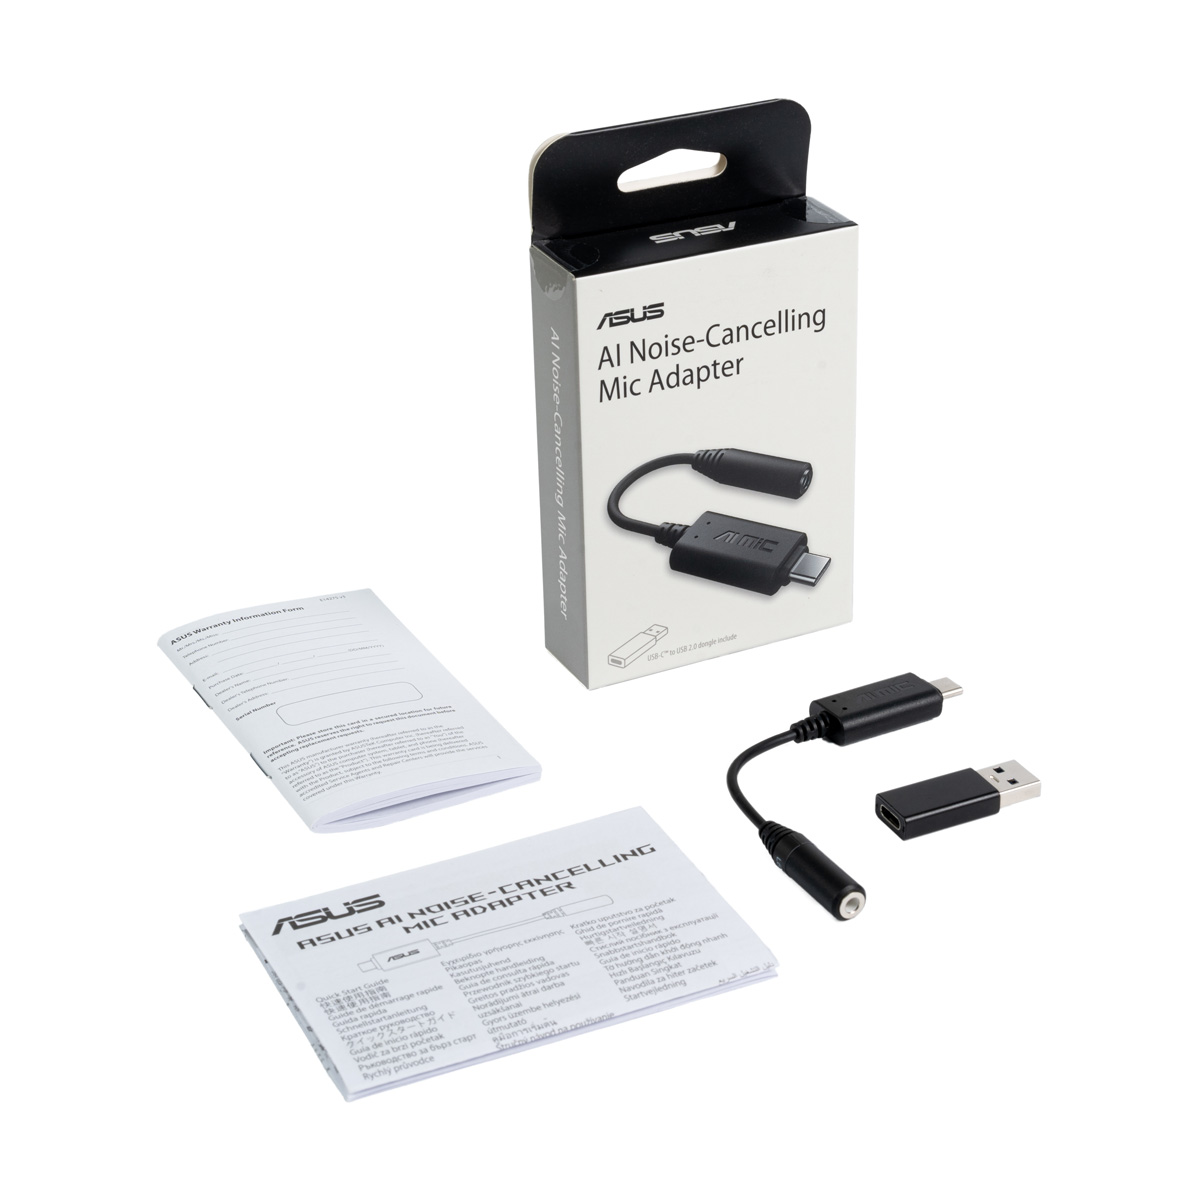 ASUS AI Noise Canceling Mic Adapter